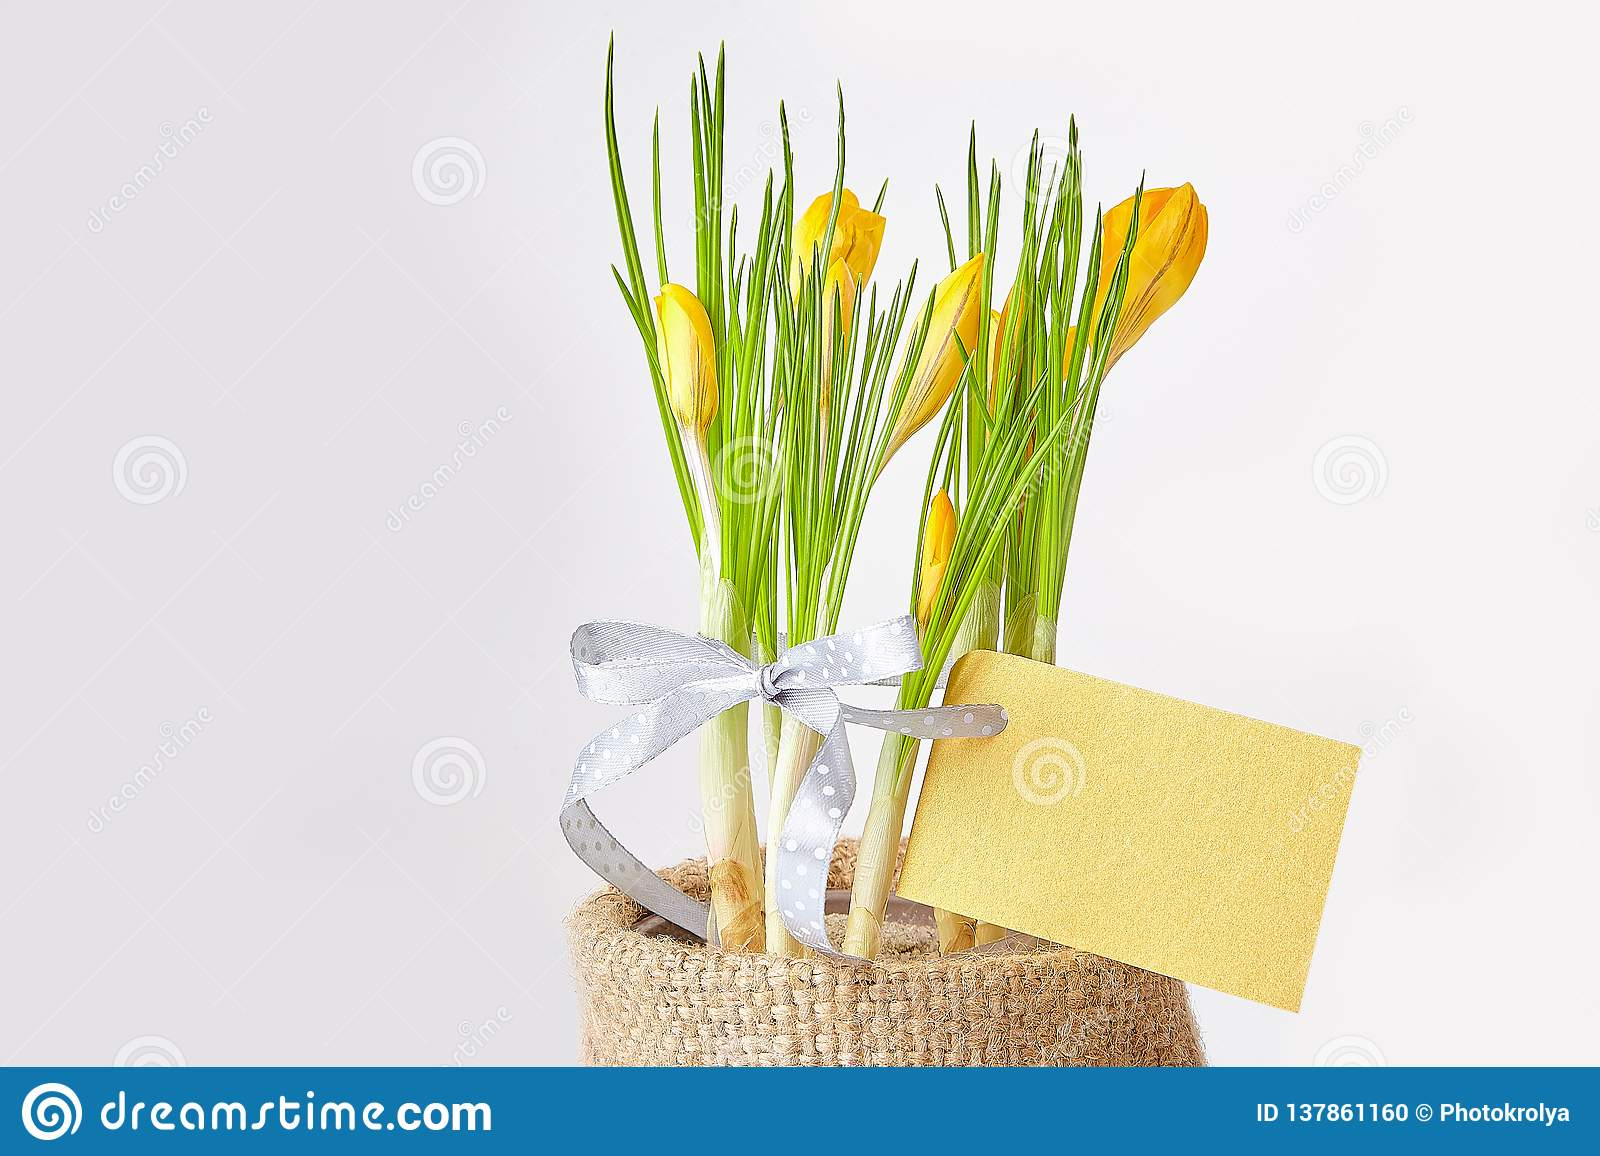 Yellow crocuses on a white background